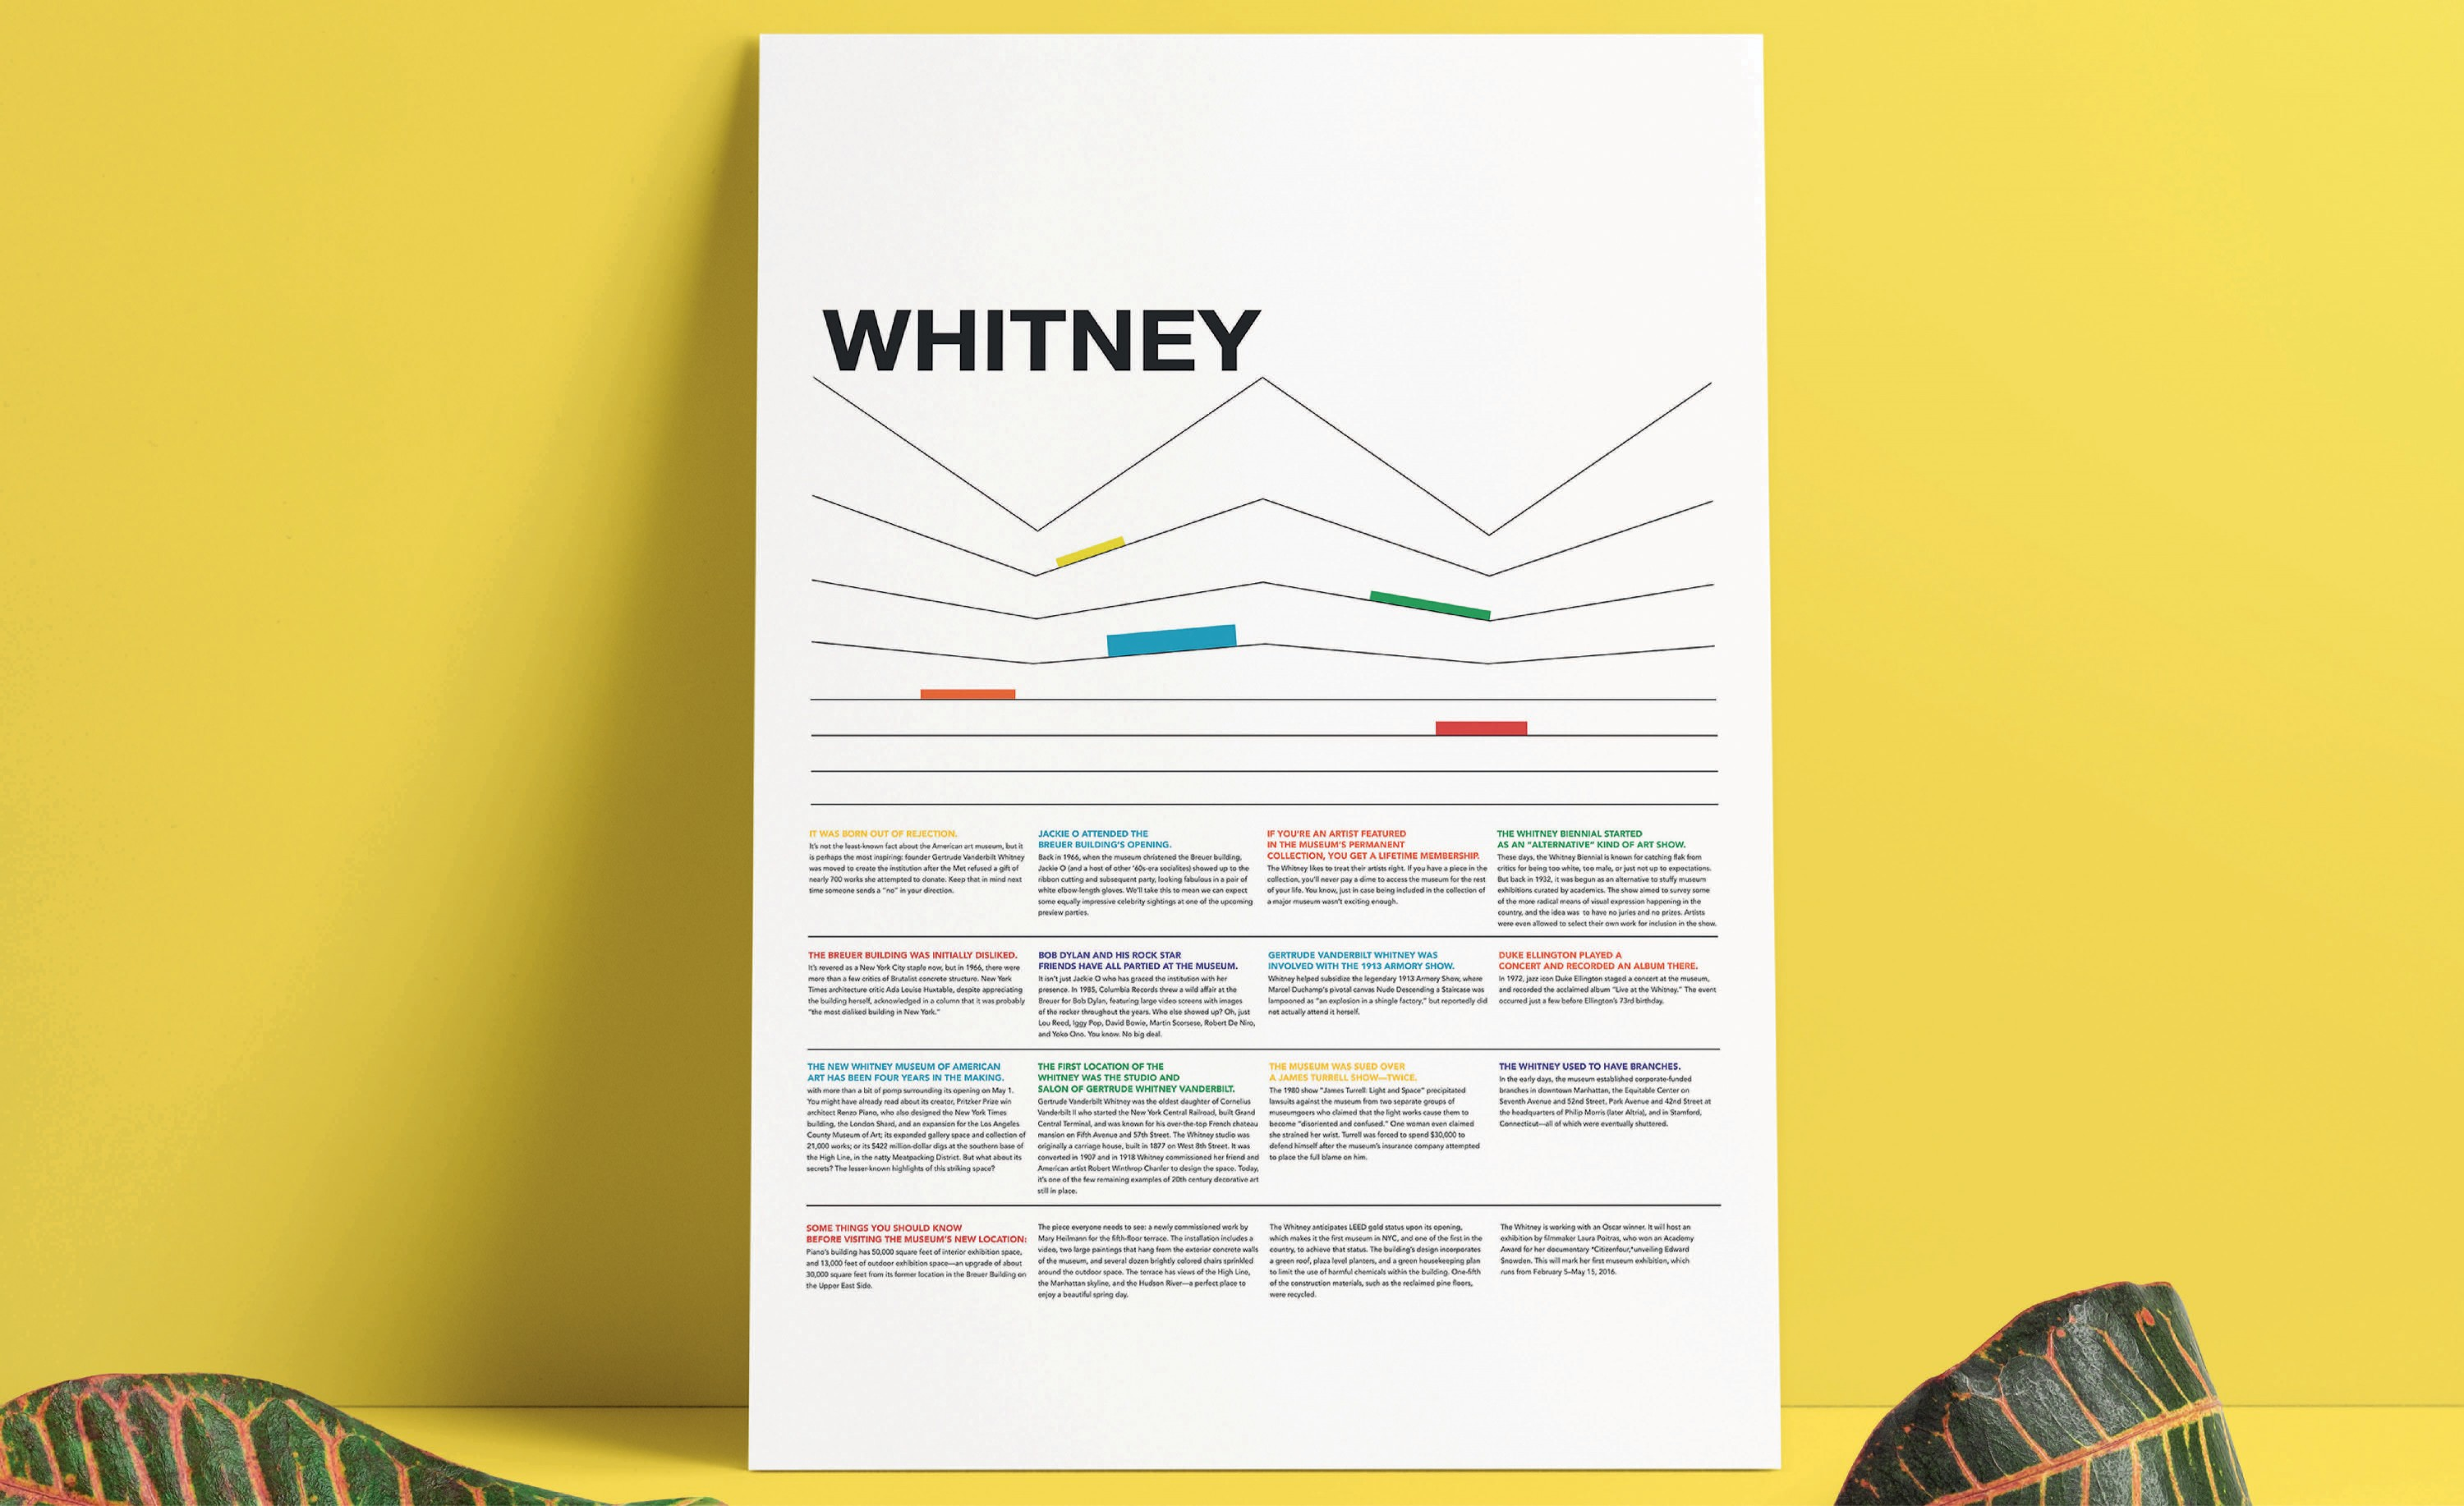 This poster comes from my re-design project of Whitney Museum of Art in NYC. As the preeminent institution devoted to the art of the United States, the Whitney Museum of American Art presents the full range of twentieth-century and contemporary American a